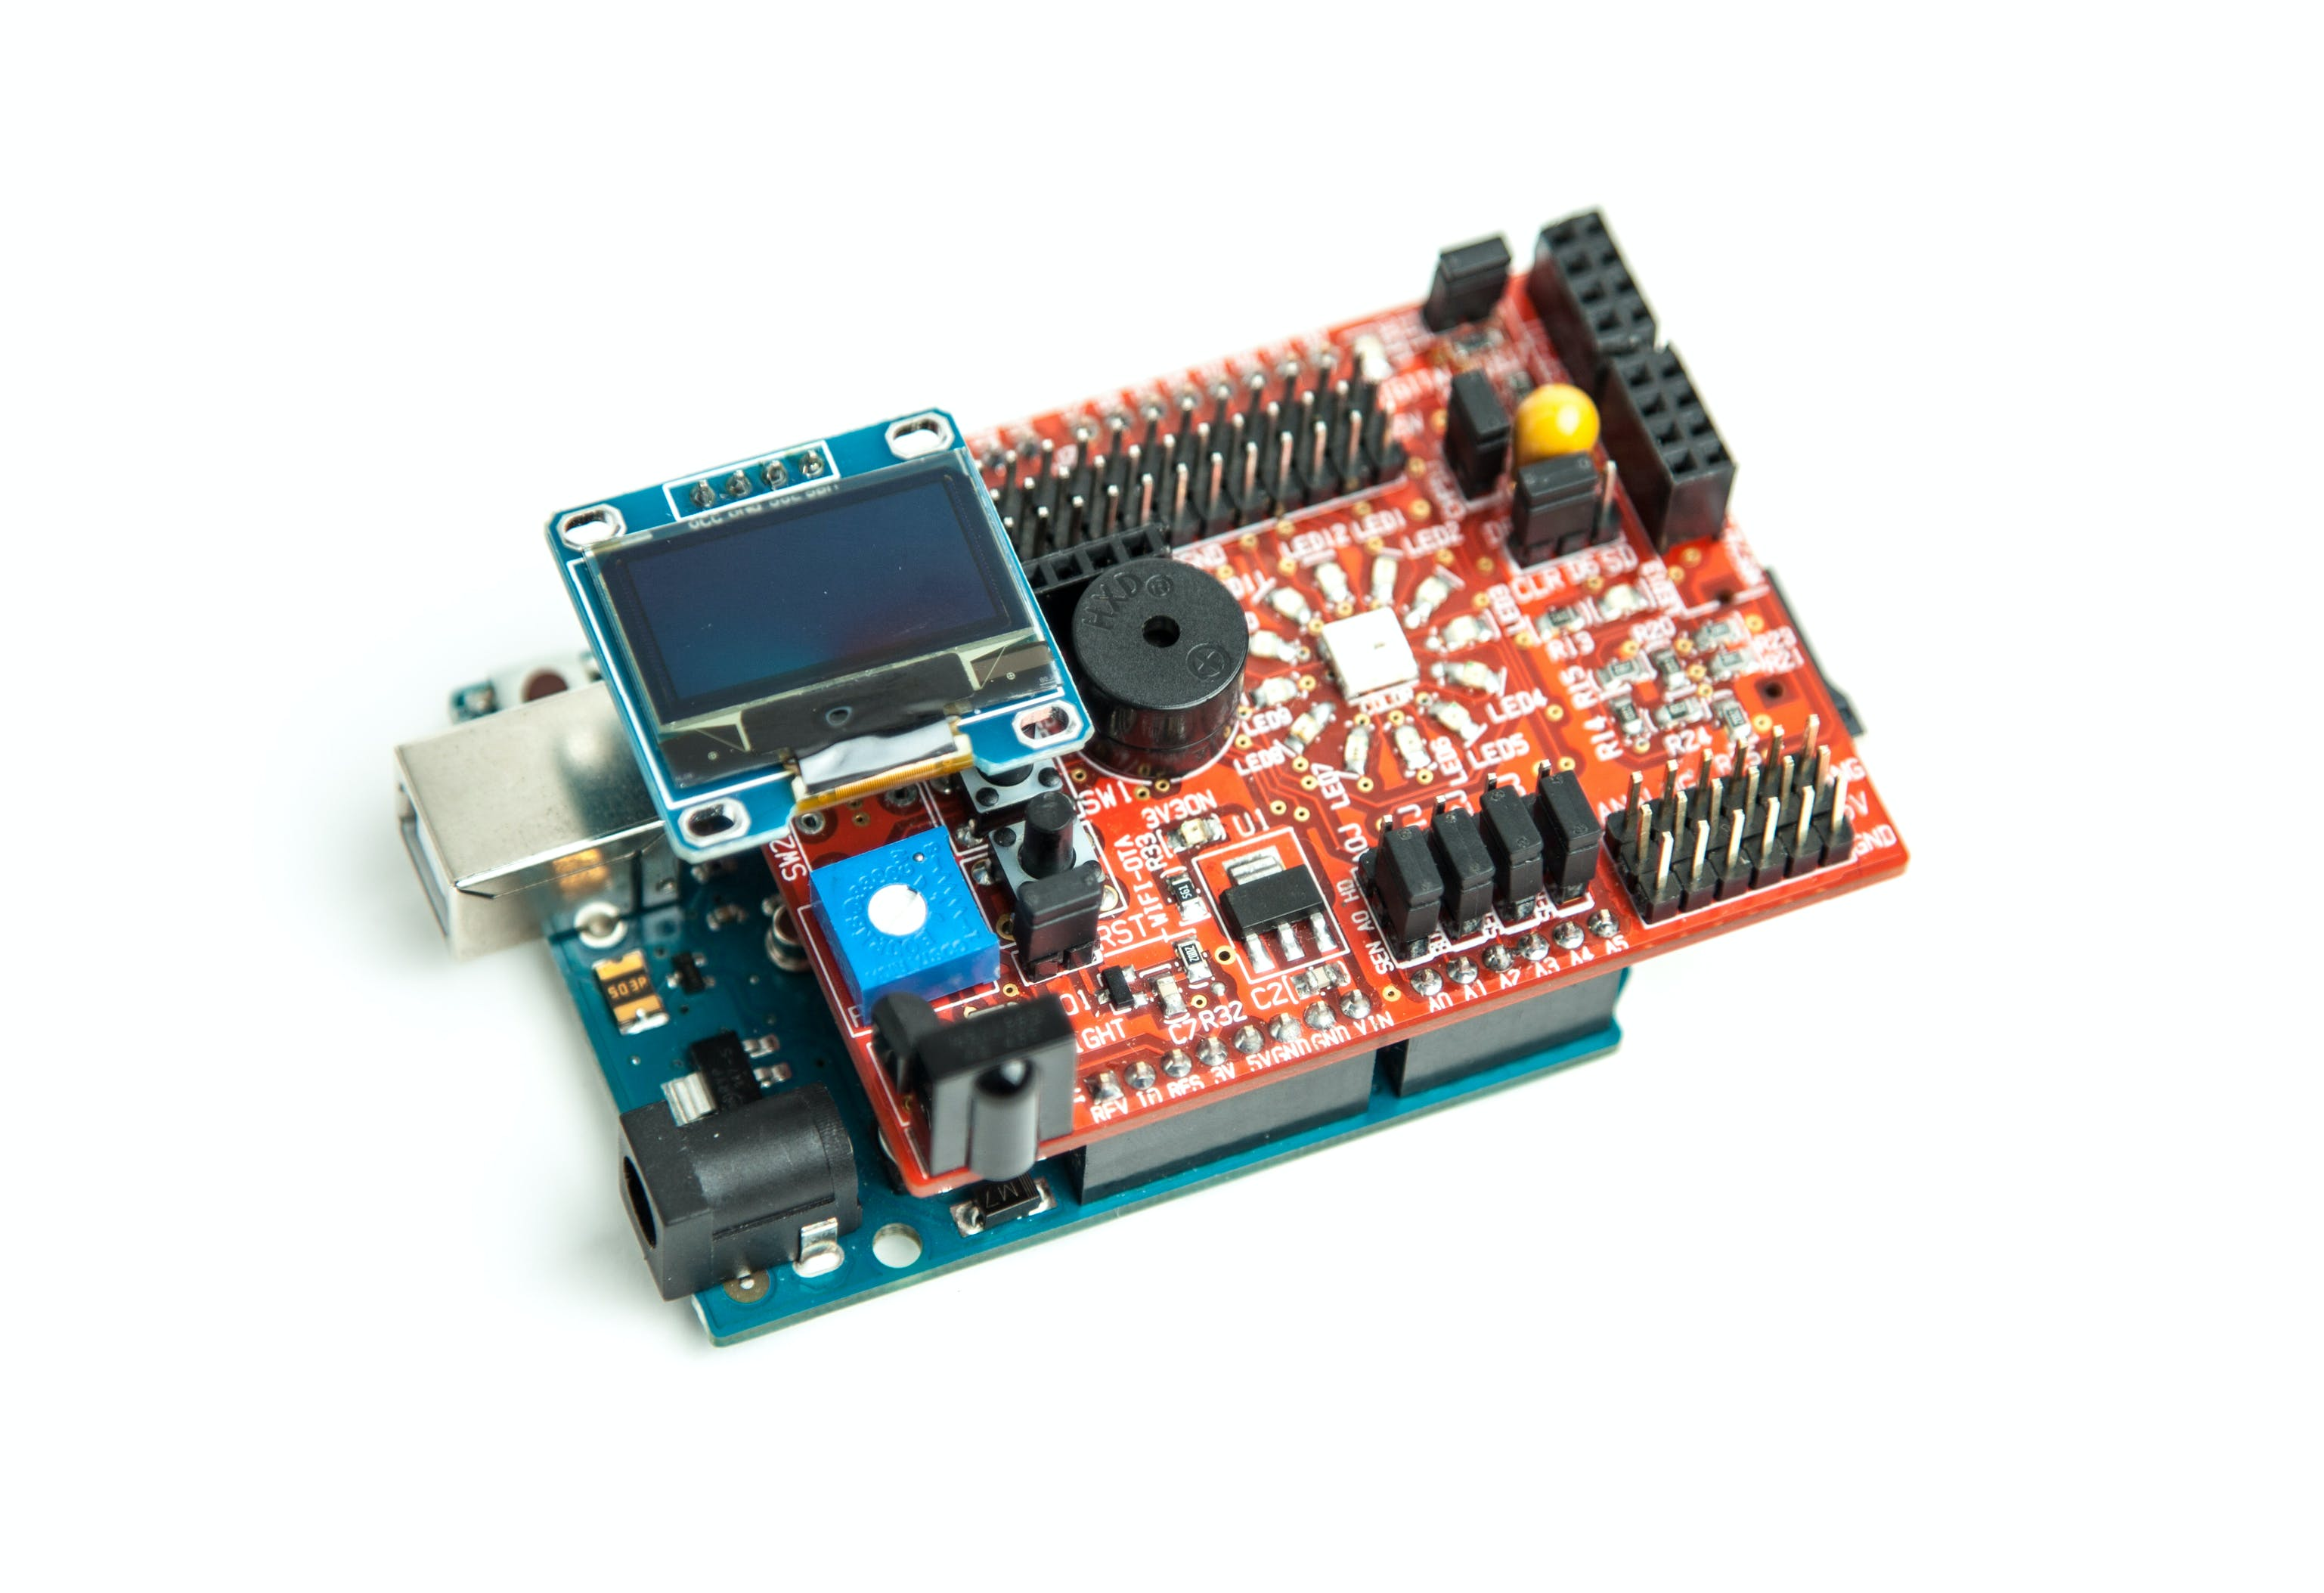 Connect the i2c oled to the i2c header